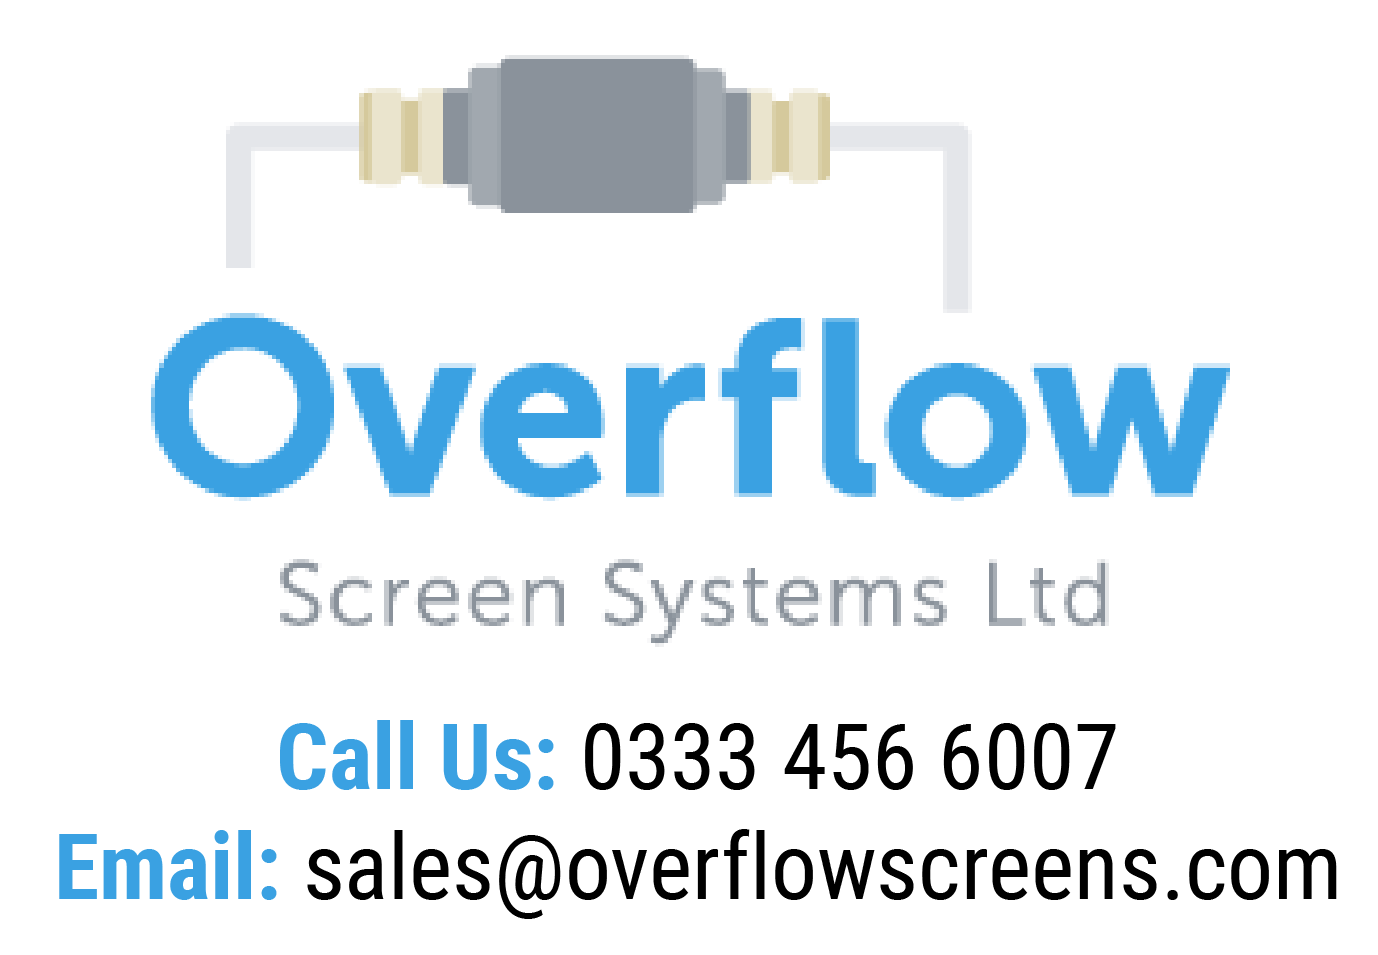 Overflow Screen Systems